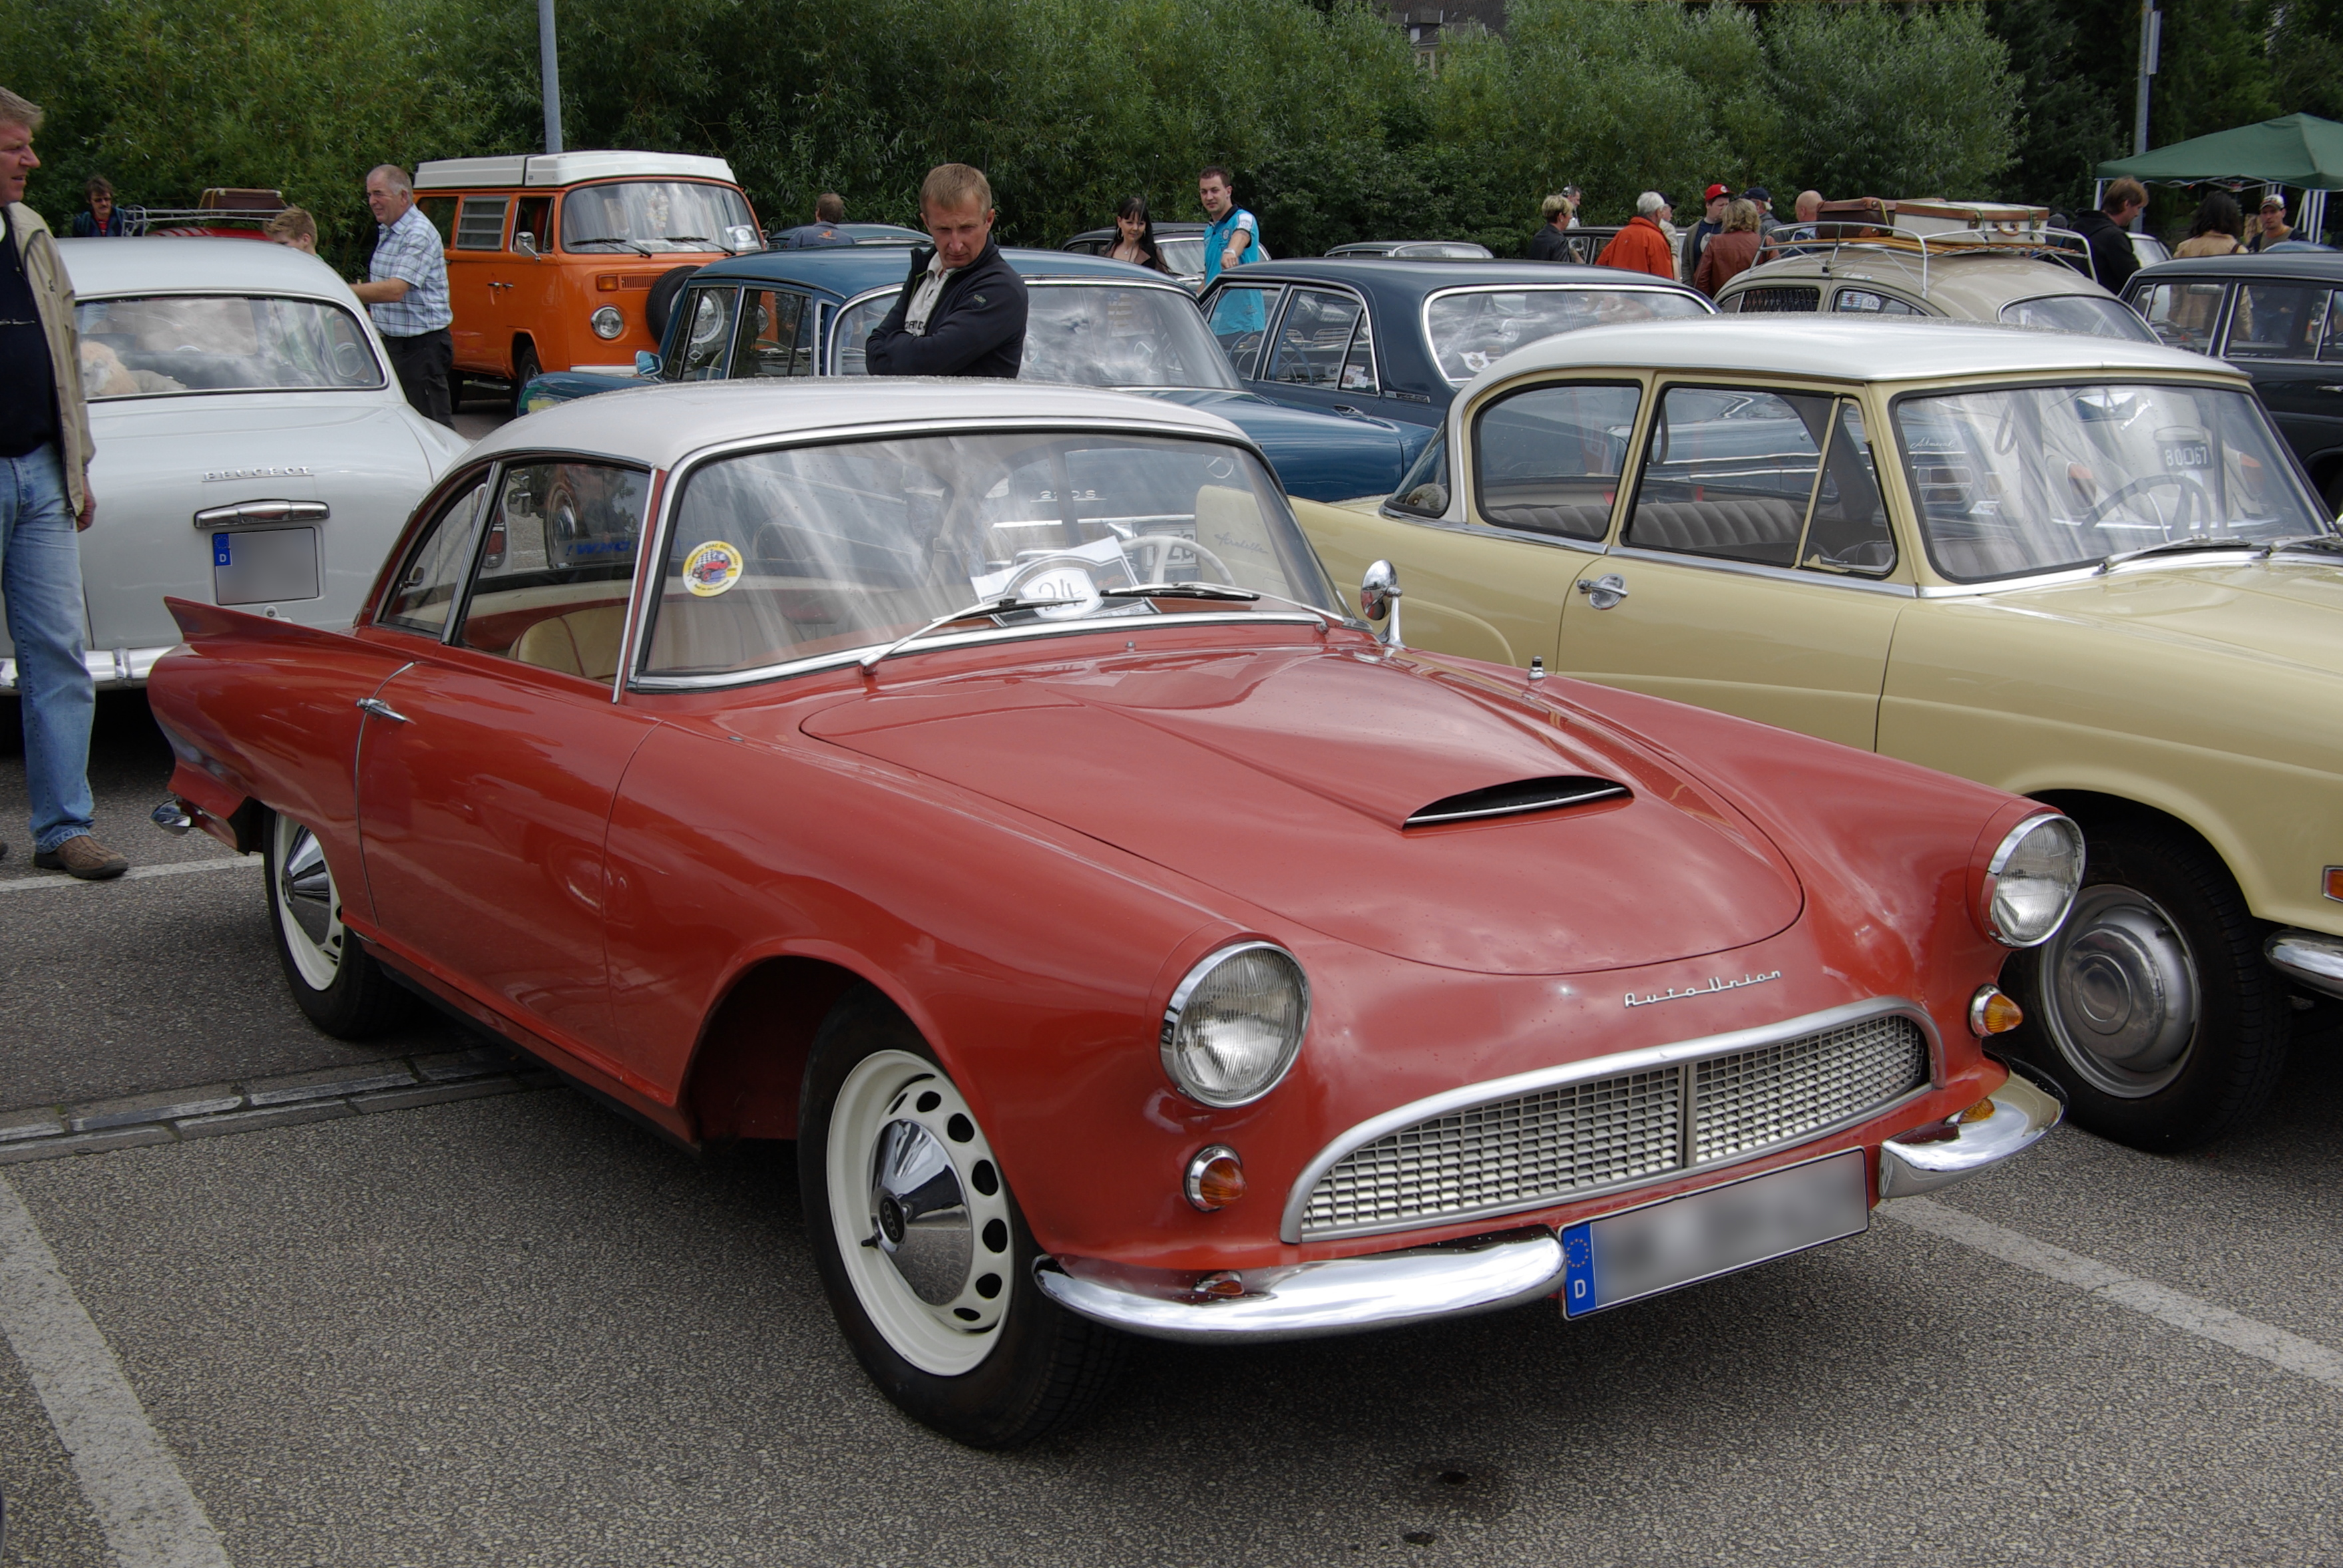 File Auto Union 1000 Sp 2012 07 15 13 55 46 Jpg